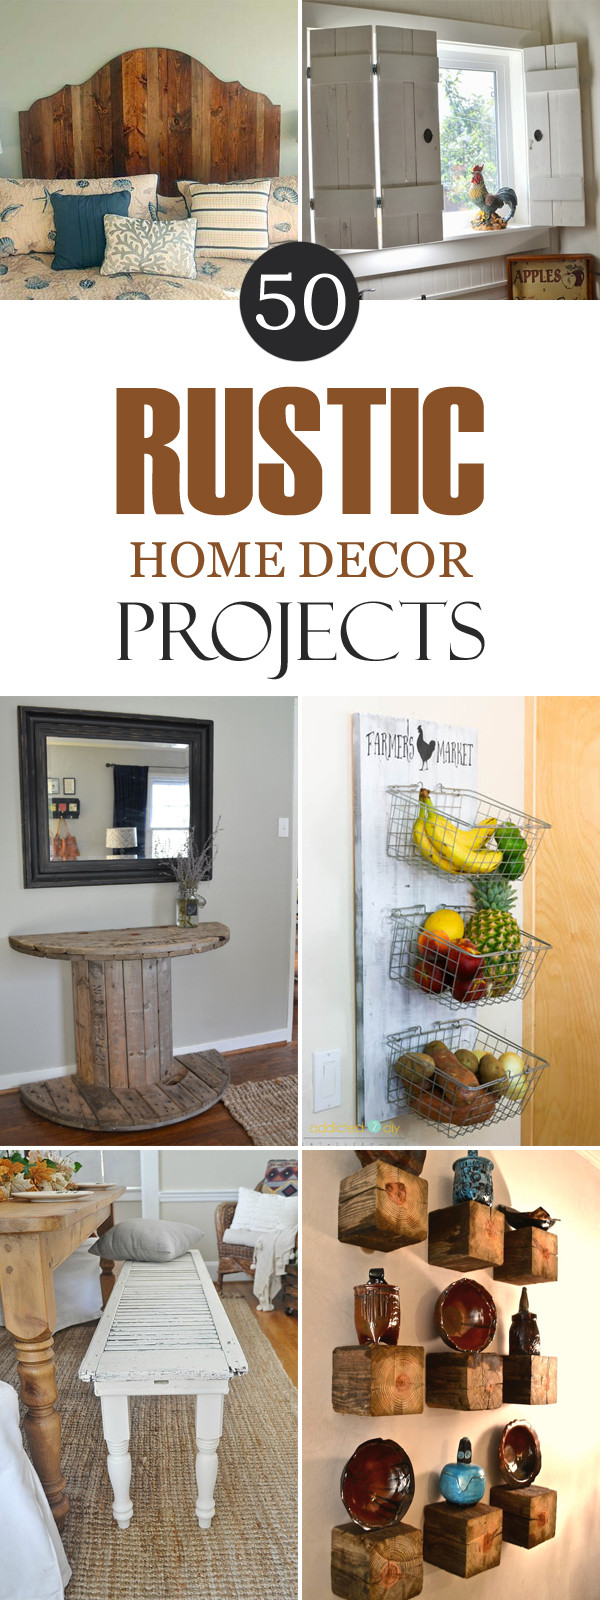 Best ideas about DIY Home Decor Crafts . Save or Pin 50 Rustic DIY Home Decor Projects Now.